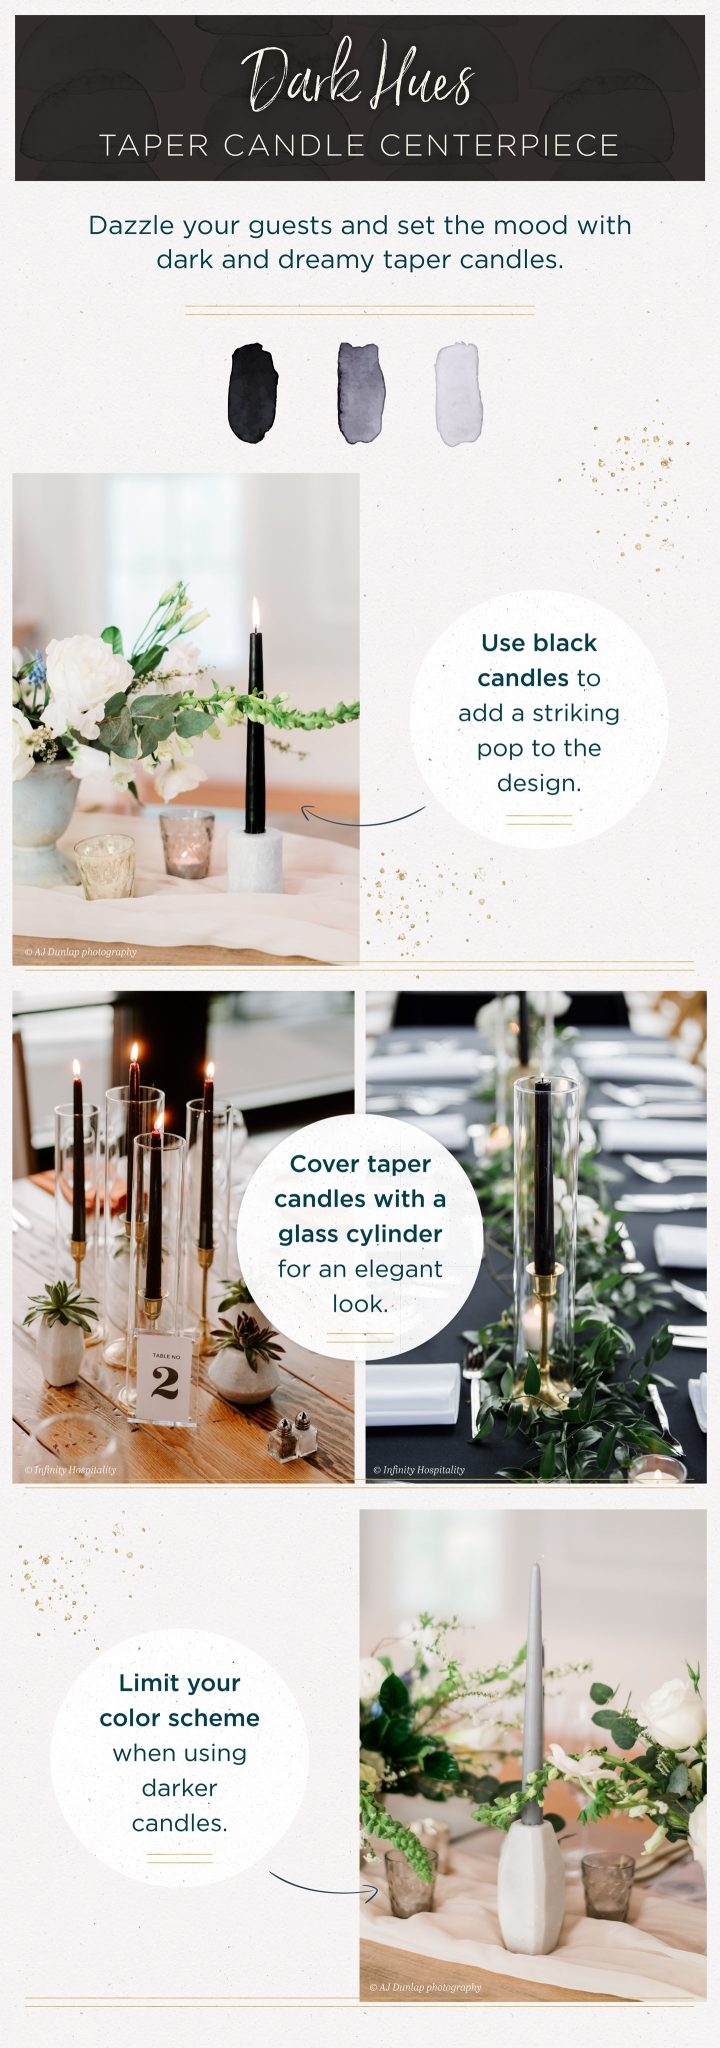 taper candle centerpieces dark hues